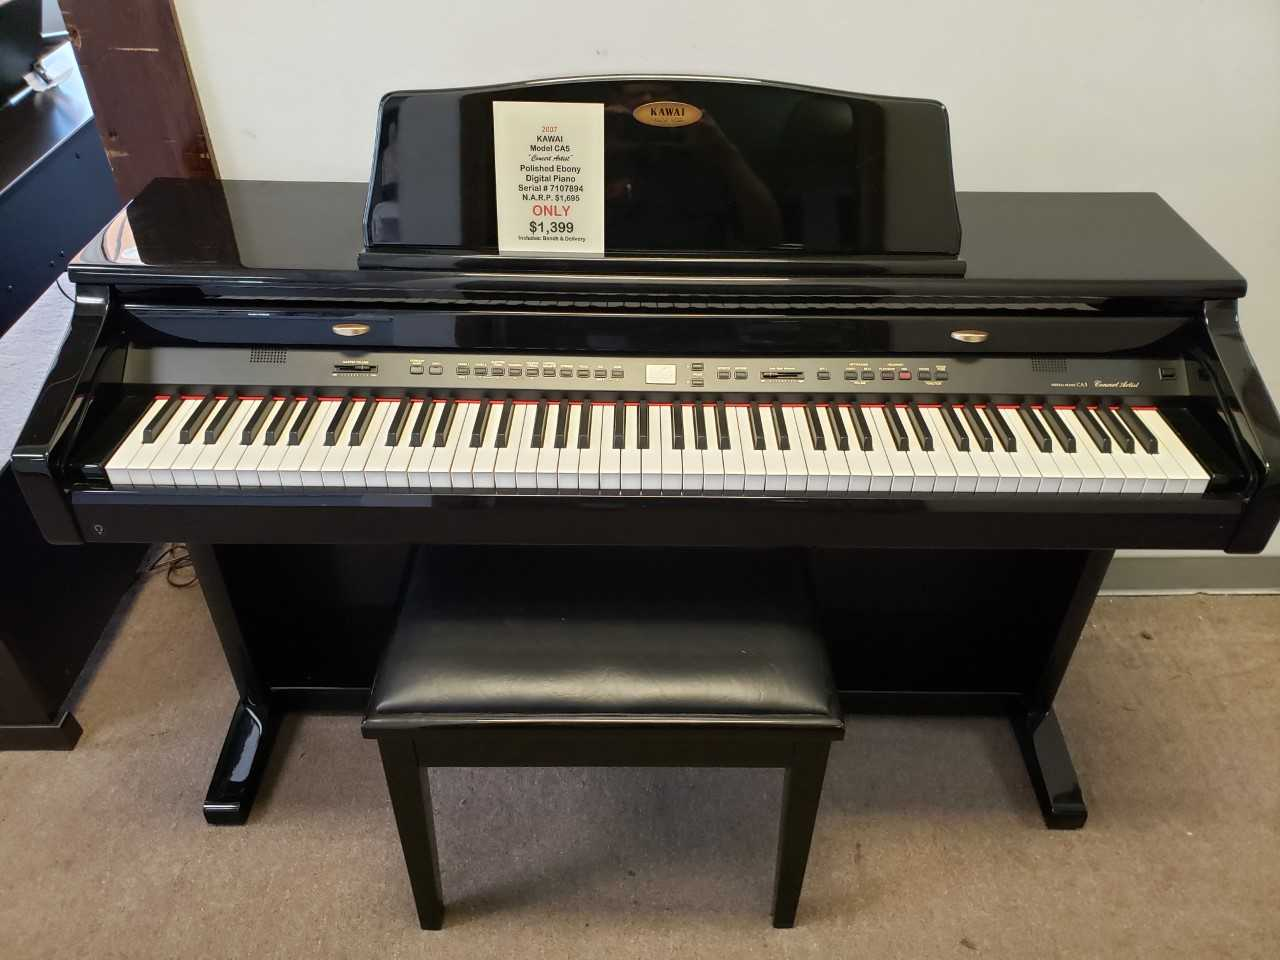 "2007 Kawai Model CA5 ""Concert Artist"" Polished Ebony Digital Piano"